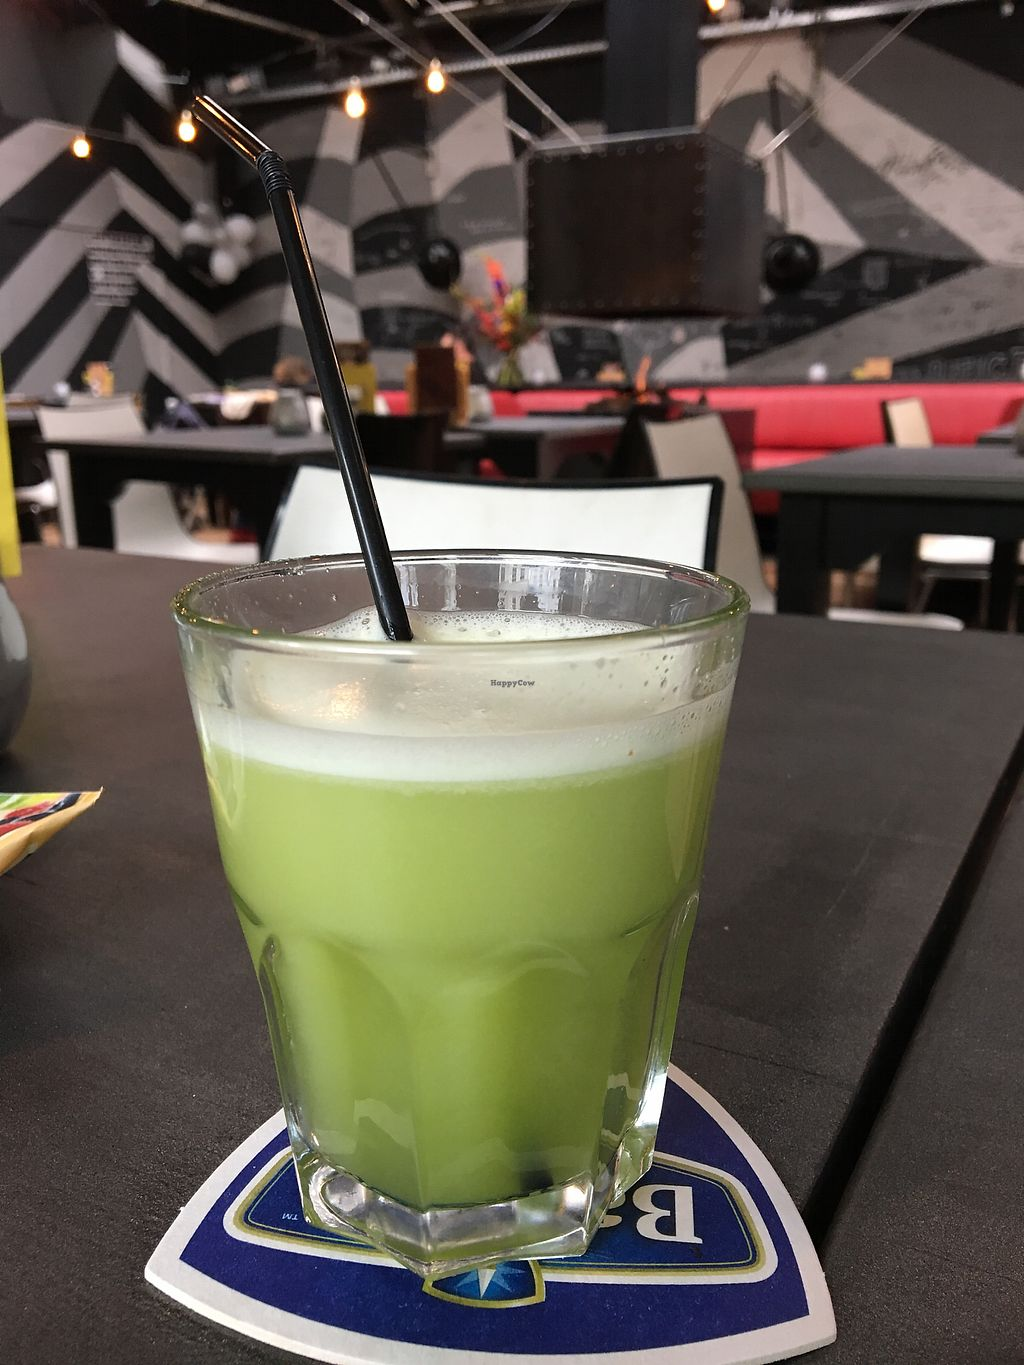 "Photo of Rotown  by <a href=""/members/profile/Marianne1967"">Marianne1967</a> <br/>Venkelvenkel juice in the restaurant in the back <br/> October 31, 2017  - <a href='/contact/abuse/image/103118/320430'>Report</a>"